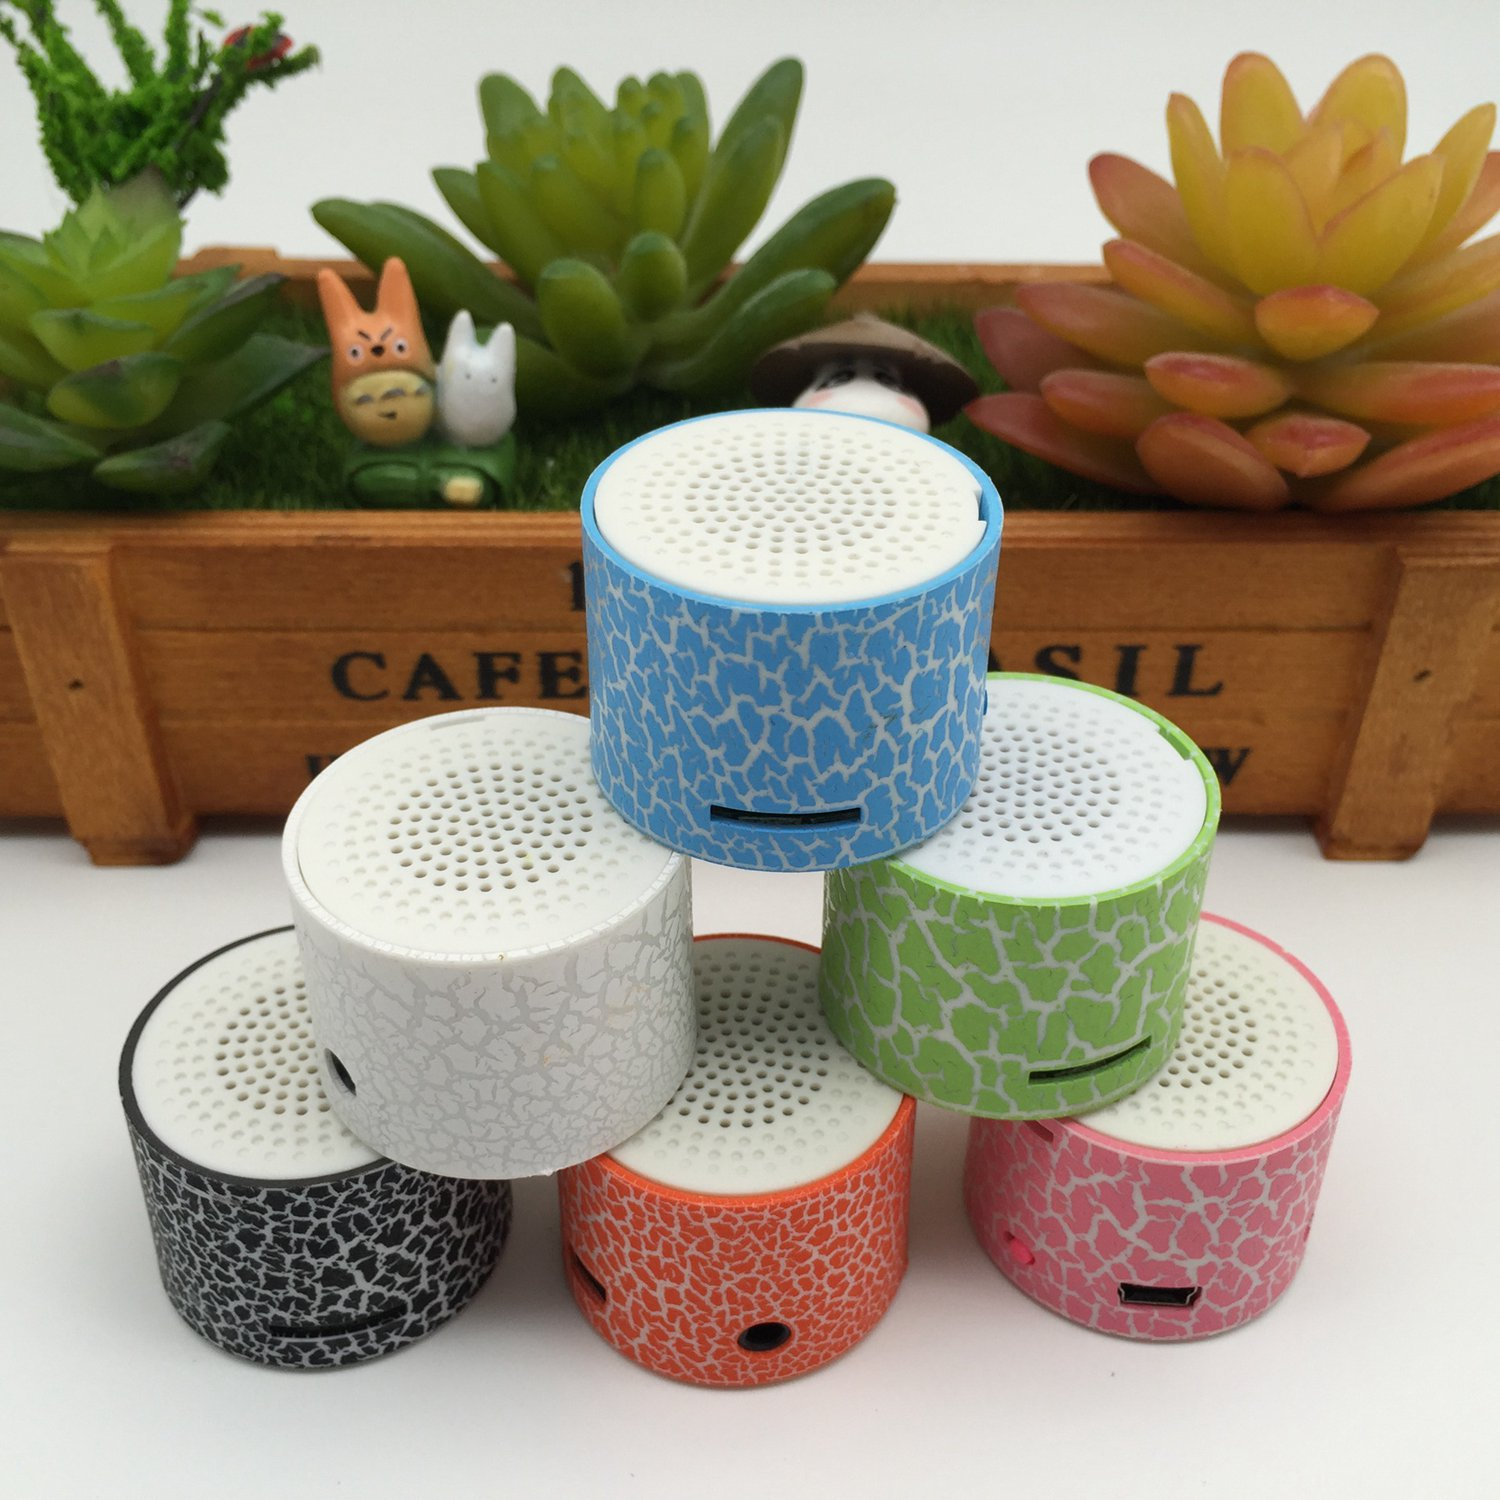 Portable Mini Stereo Speaker Small Loudspeaker Hand-Free Mic TF SD Card U Disk MP3 High-Definition Sound MP3 Music Player Cand